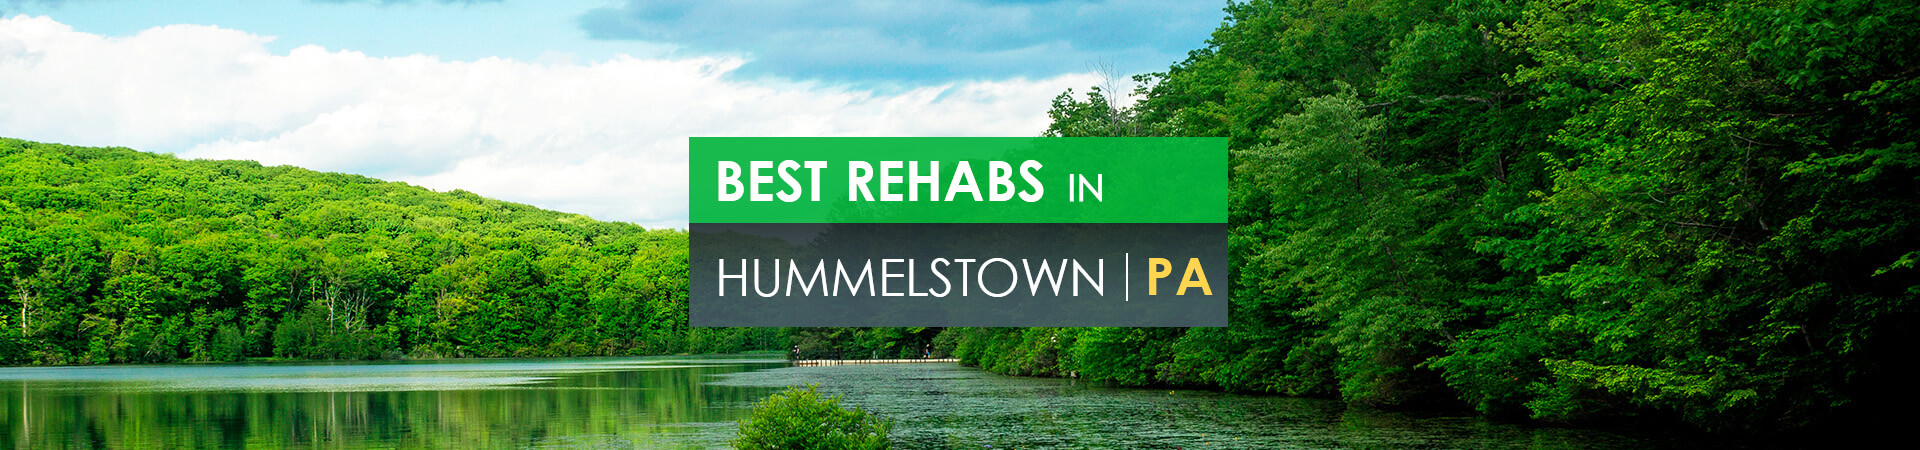 Best rehabs in Hummelstown, PA